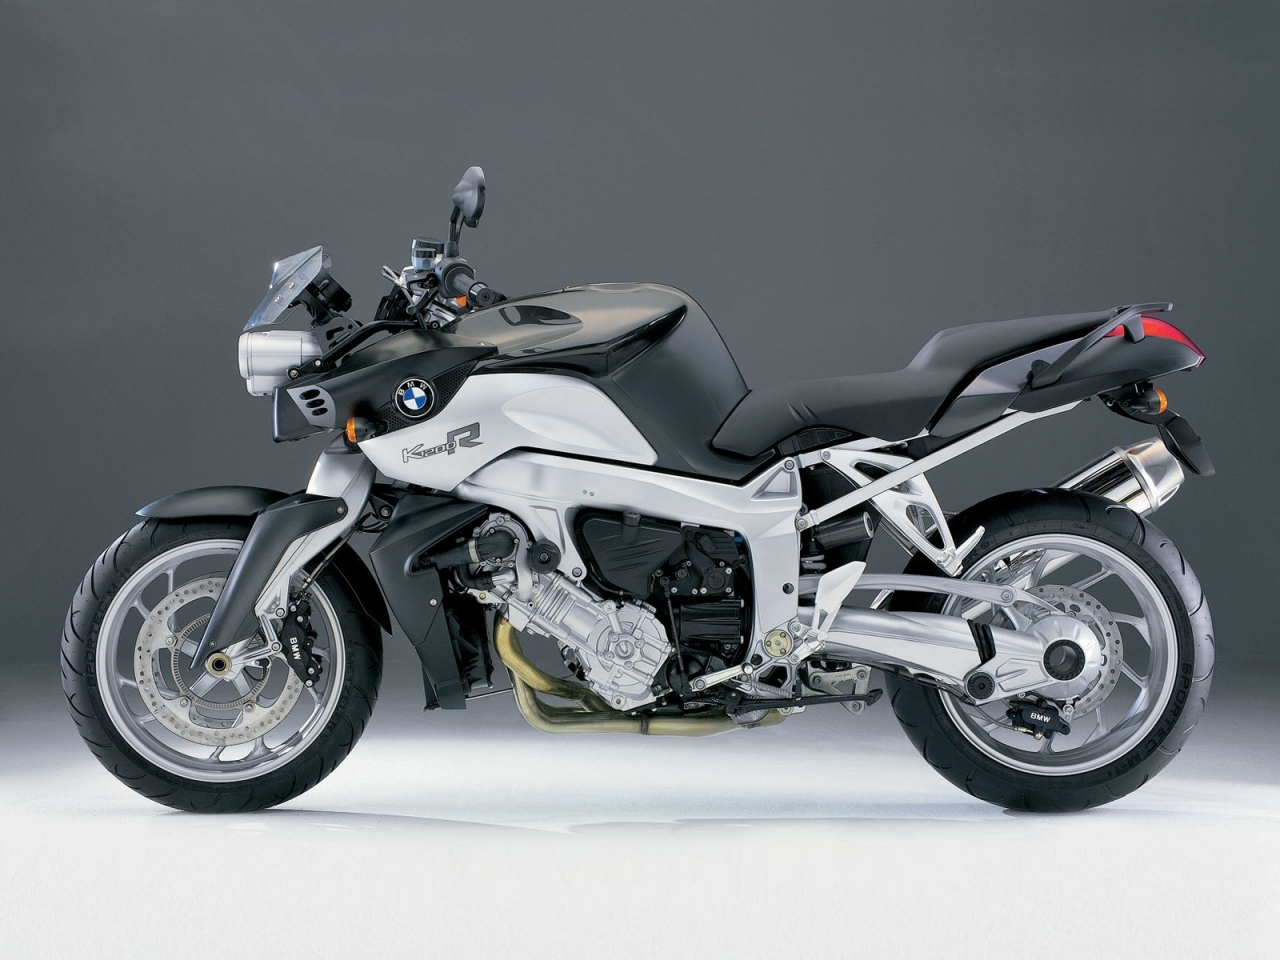 BMW K1200R for 1280 x 960 resolution